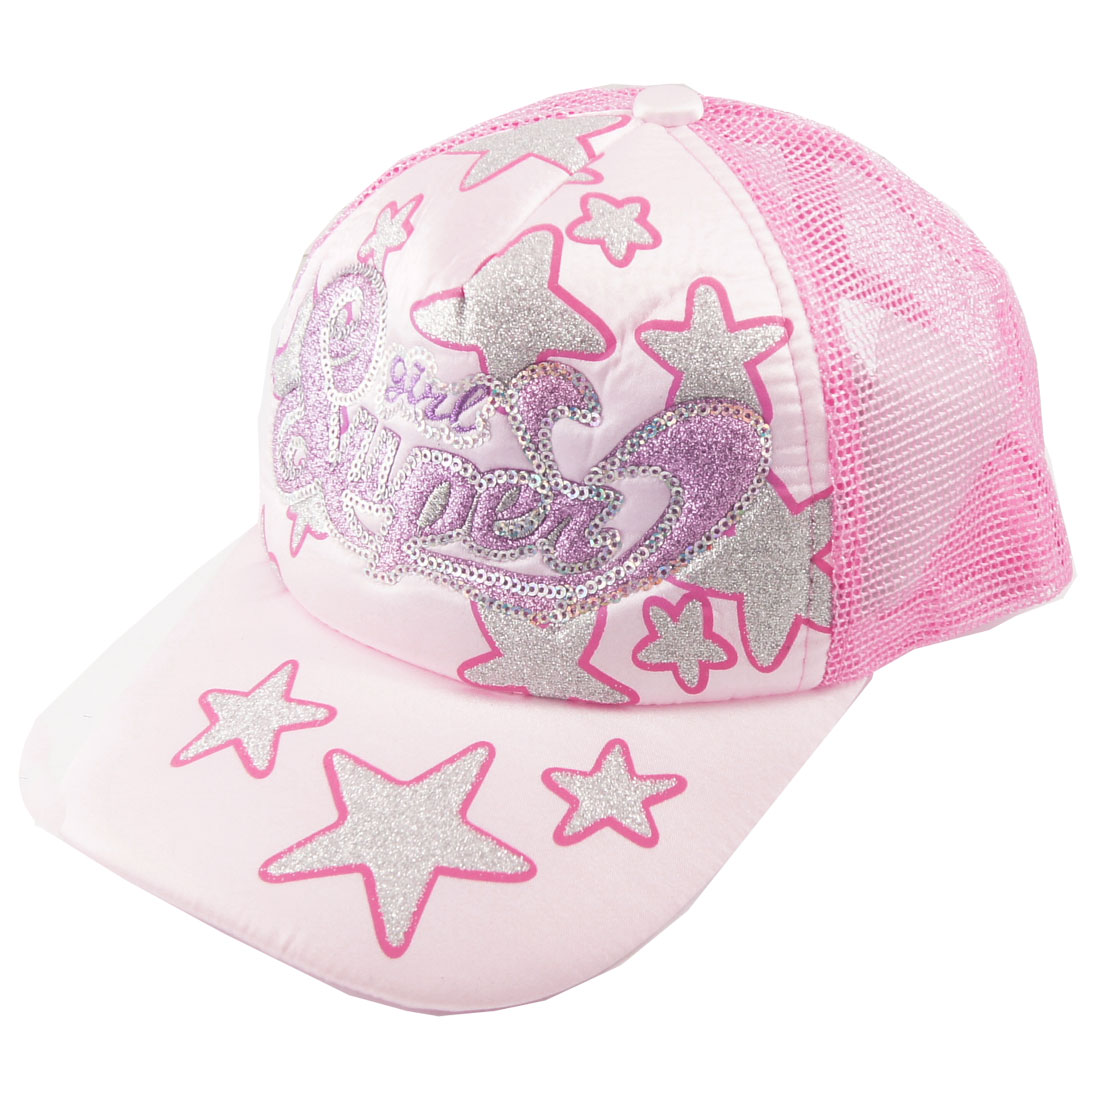 Women Glittery Letter Star Print Mesh Baseball Ball Cap Hat Brown Pink